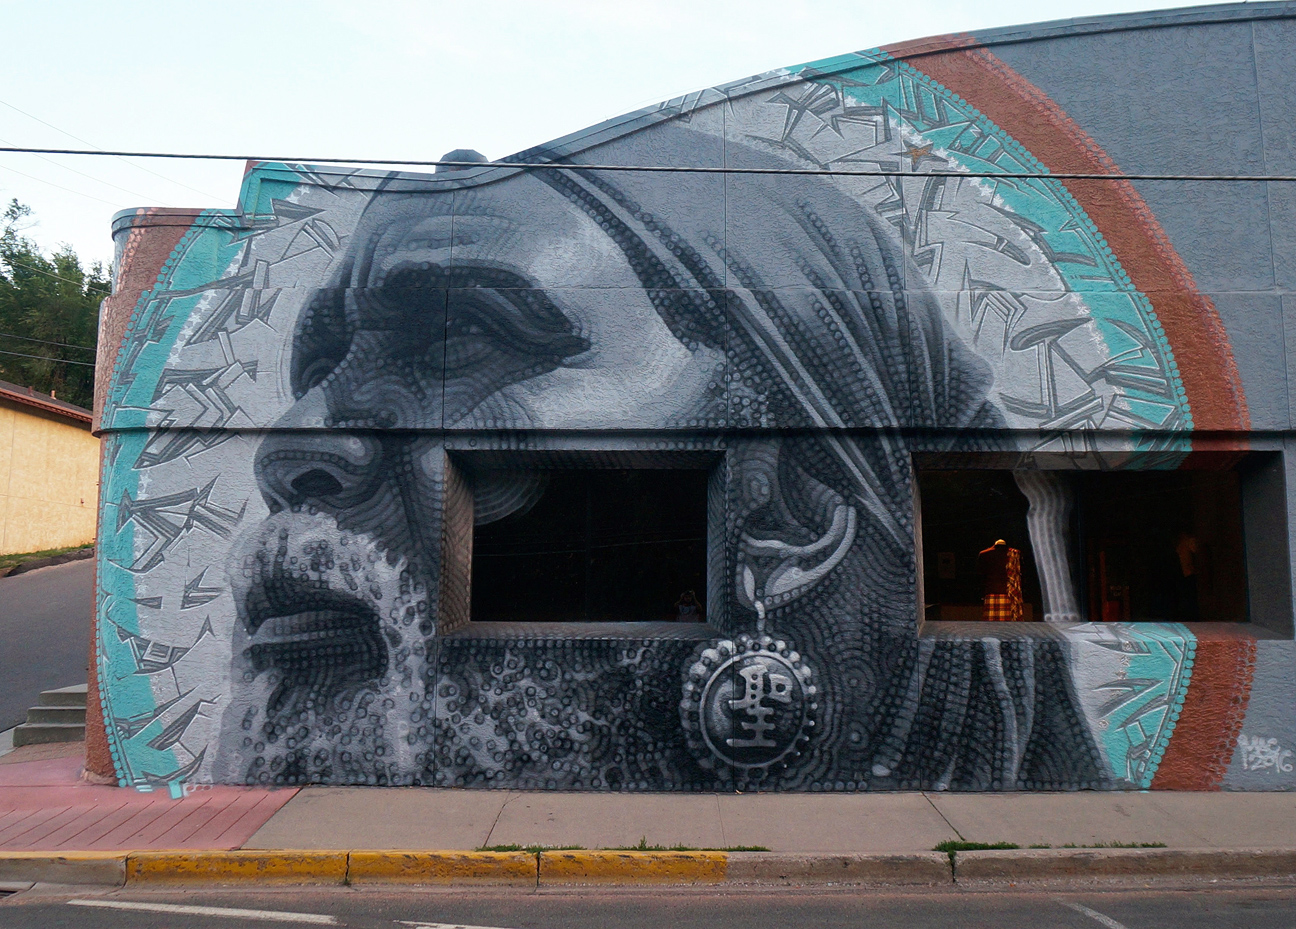 Art colorado springs - This Is A Mural I Painted Over The Summer Commissioned For The Manitou Art Center The Mac In Manitou Springs Colorado The Mural Is A Collaboration With